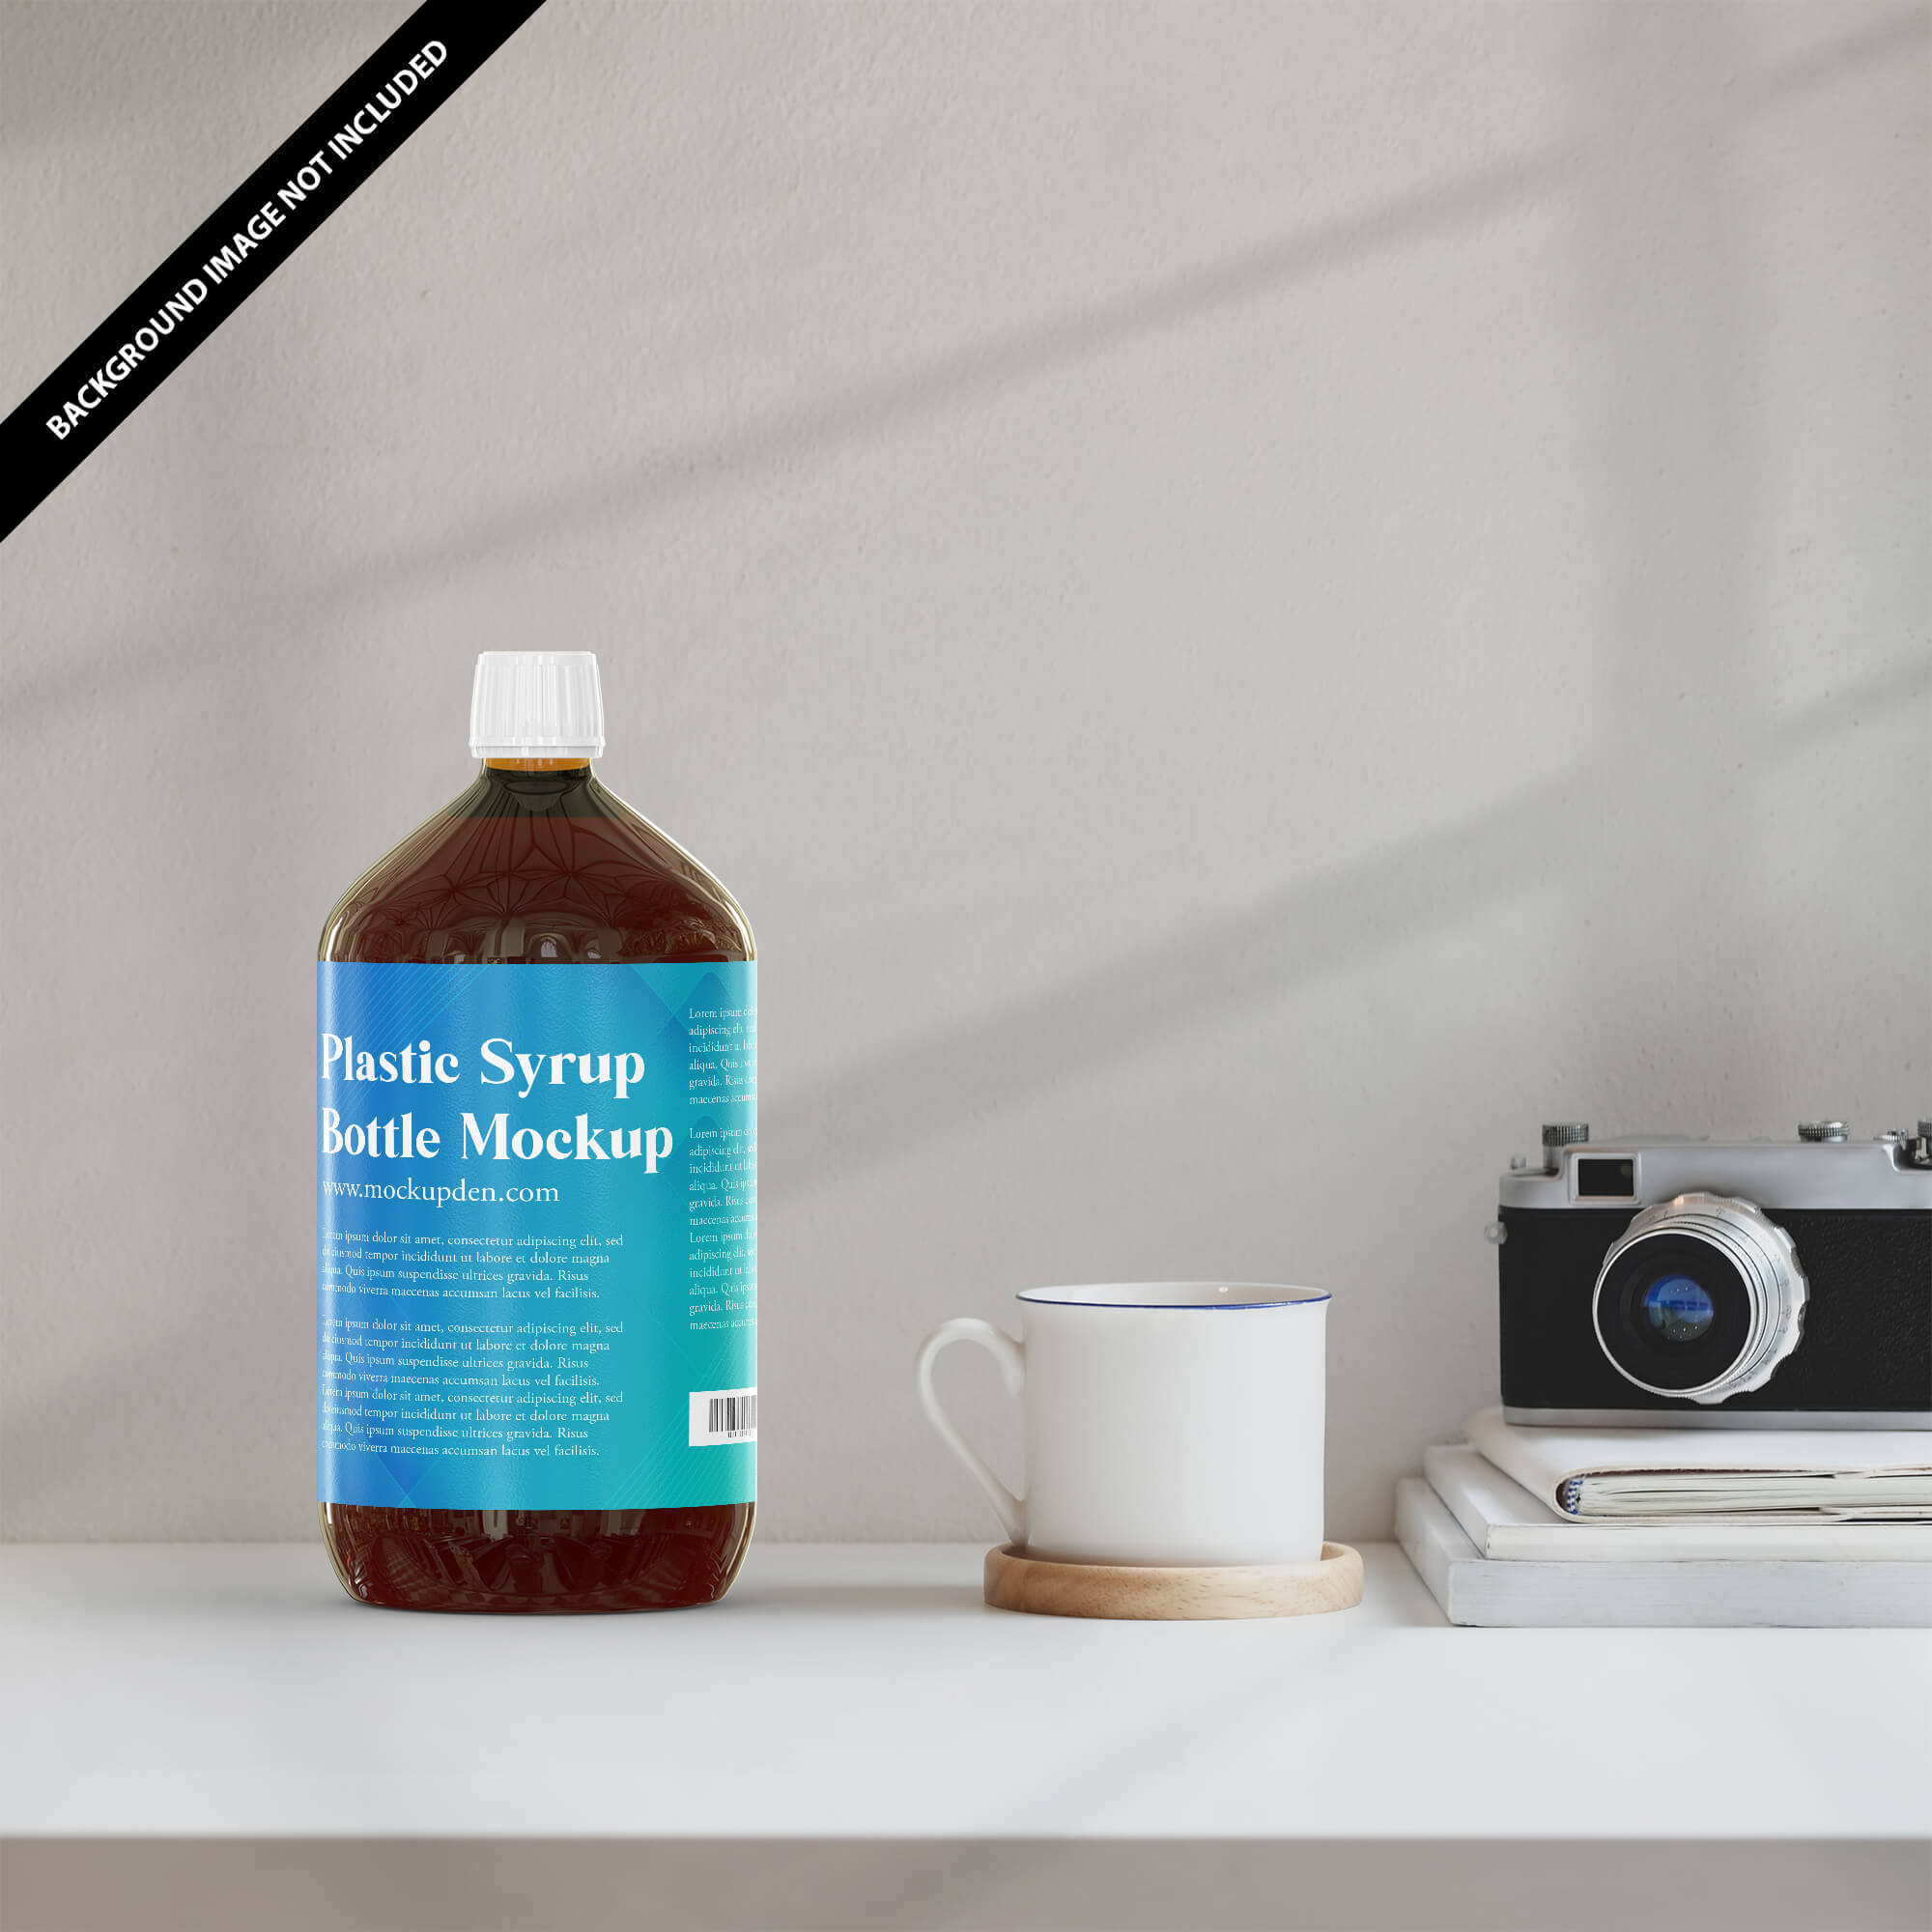 Free Plastic Syrup Bottle Mockup PSD Template